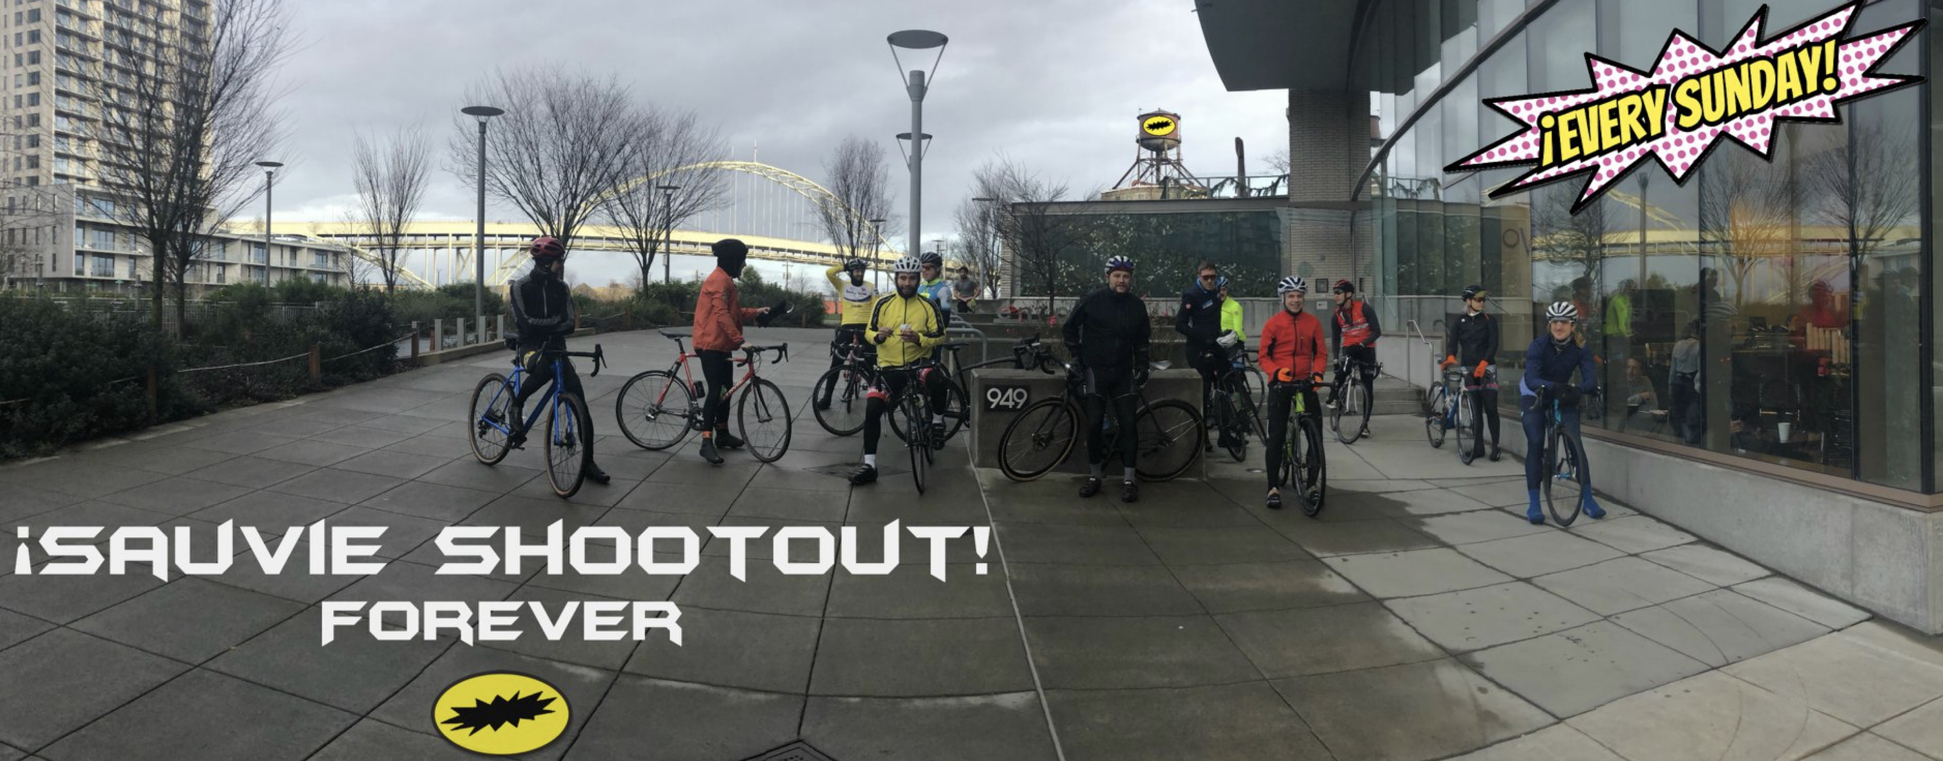 ef1b9e3e1 Survive winter riding with these 30 pearls of wisdom - BikePortland.org